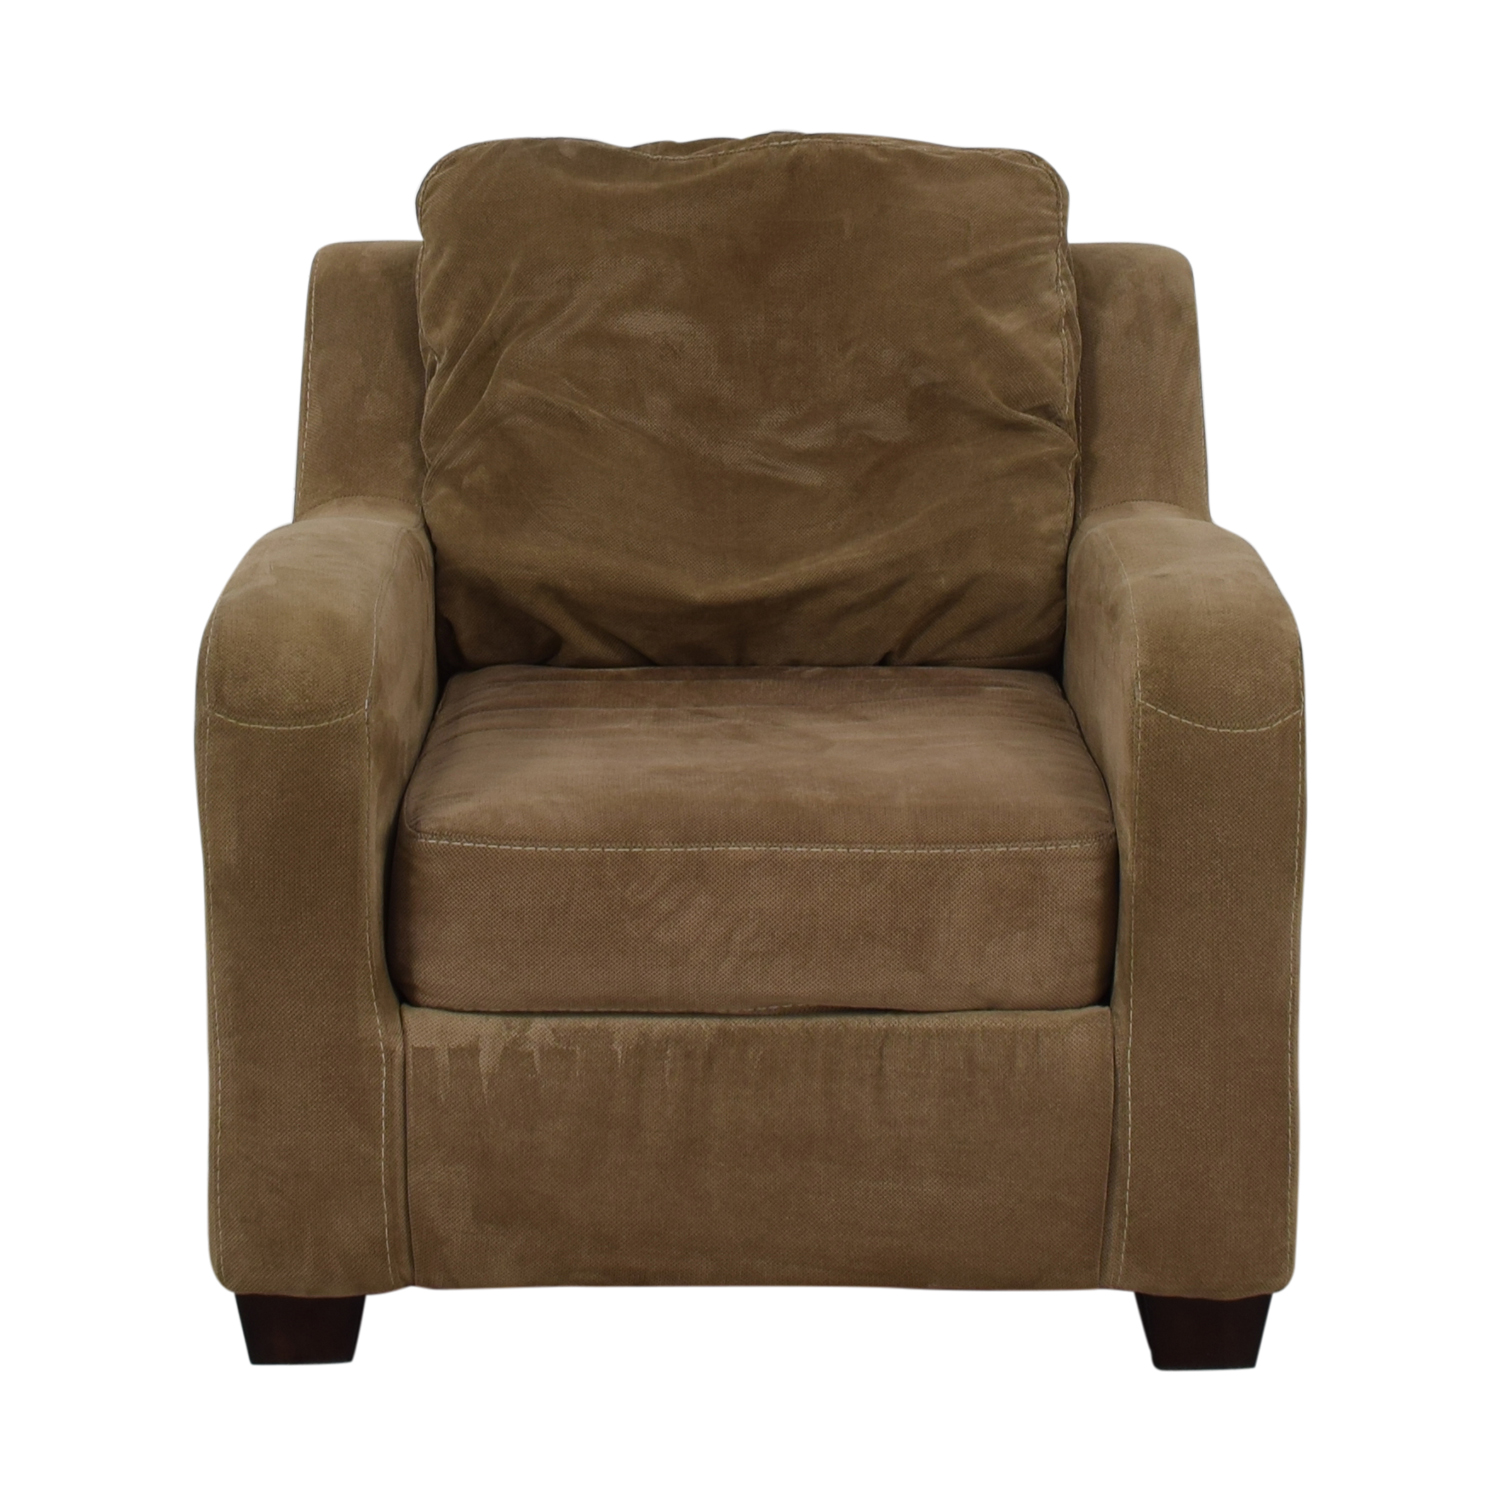 Ashley Furniture Ashley Furniture Taupe Circa Accent Chair Chairs